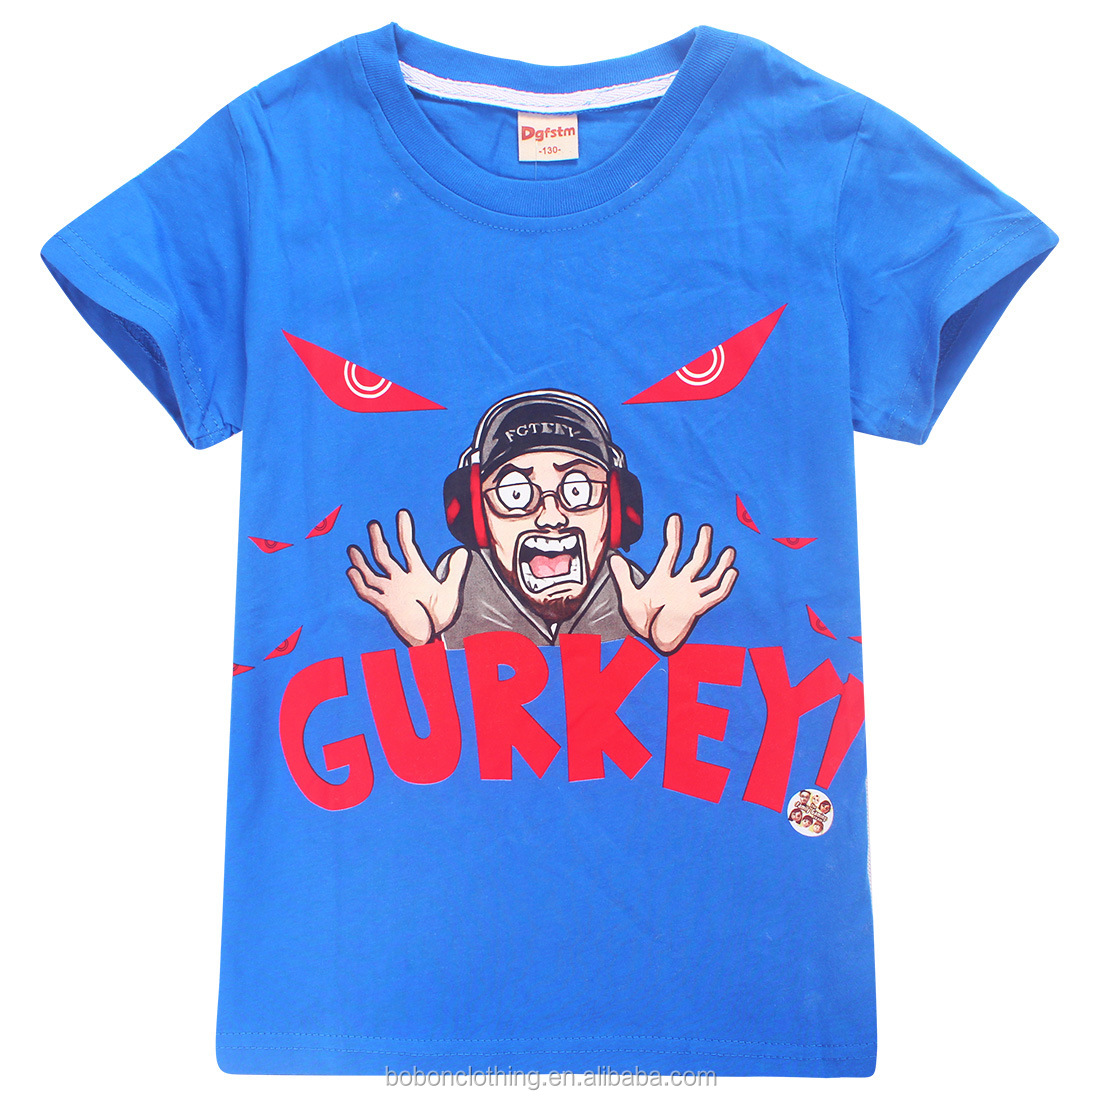 2019 hot game Gurkey printed youth t shirt stock no moq printed Gurkey t shirt supplier from China wholesale cotton kid t shirt